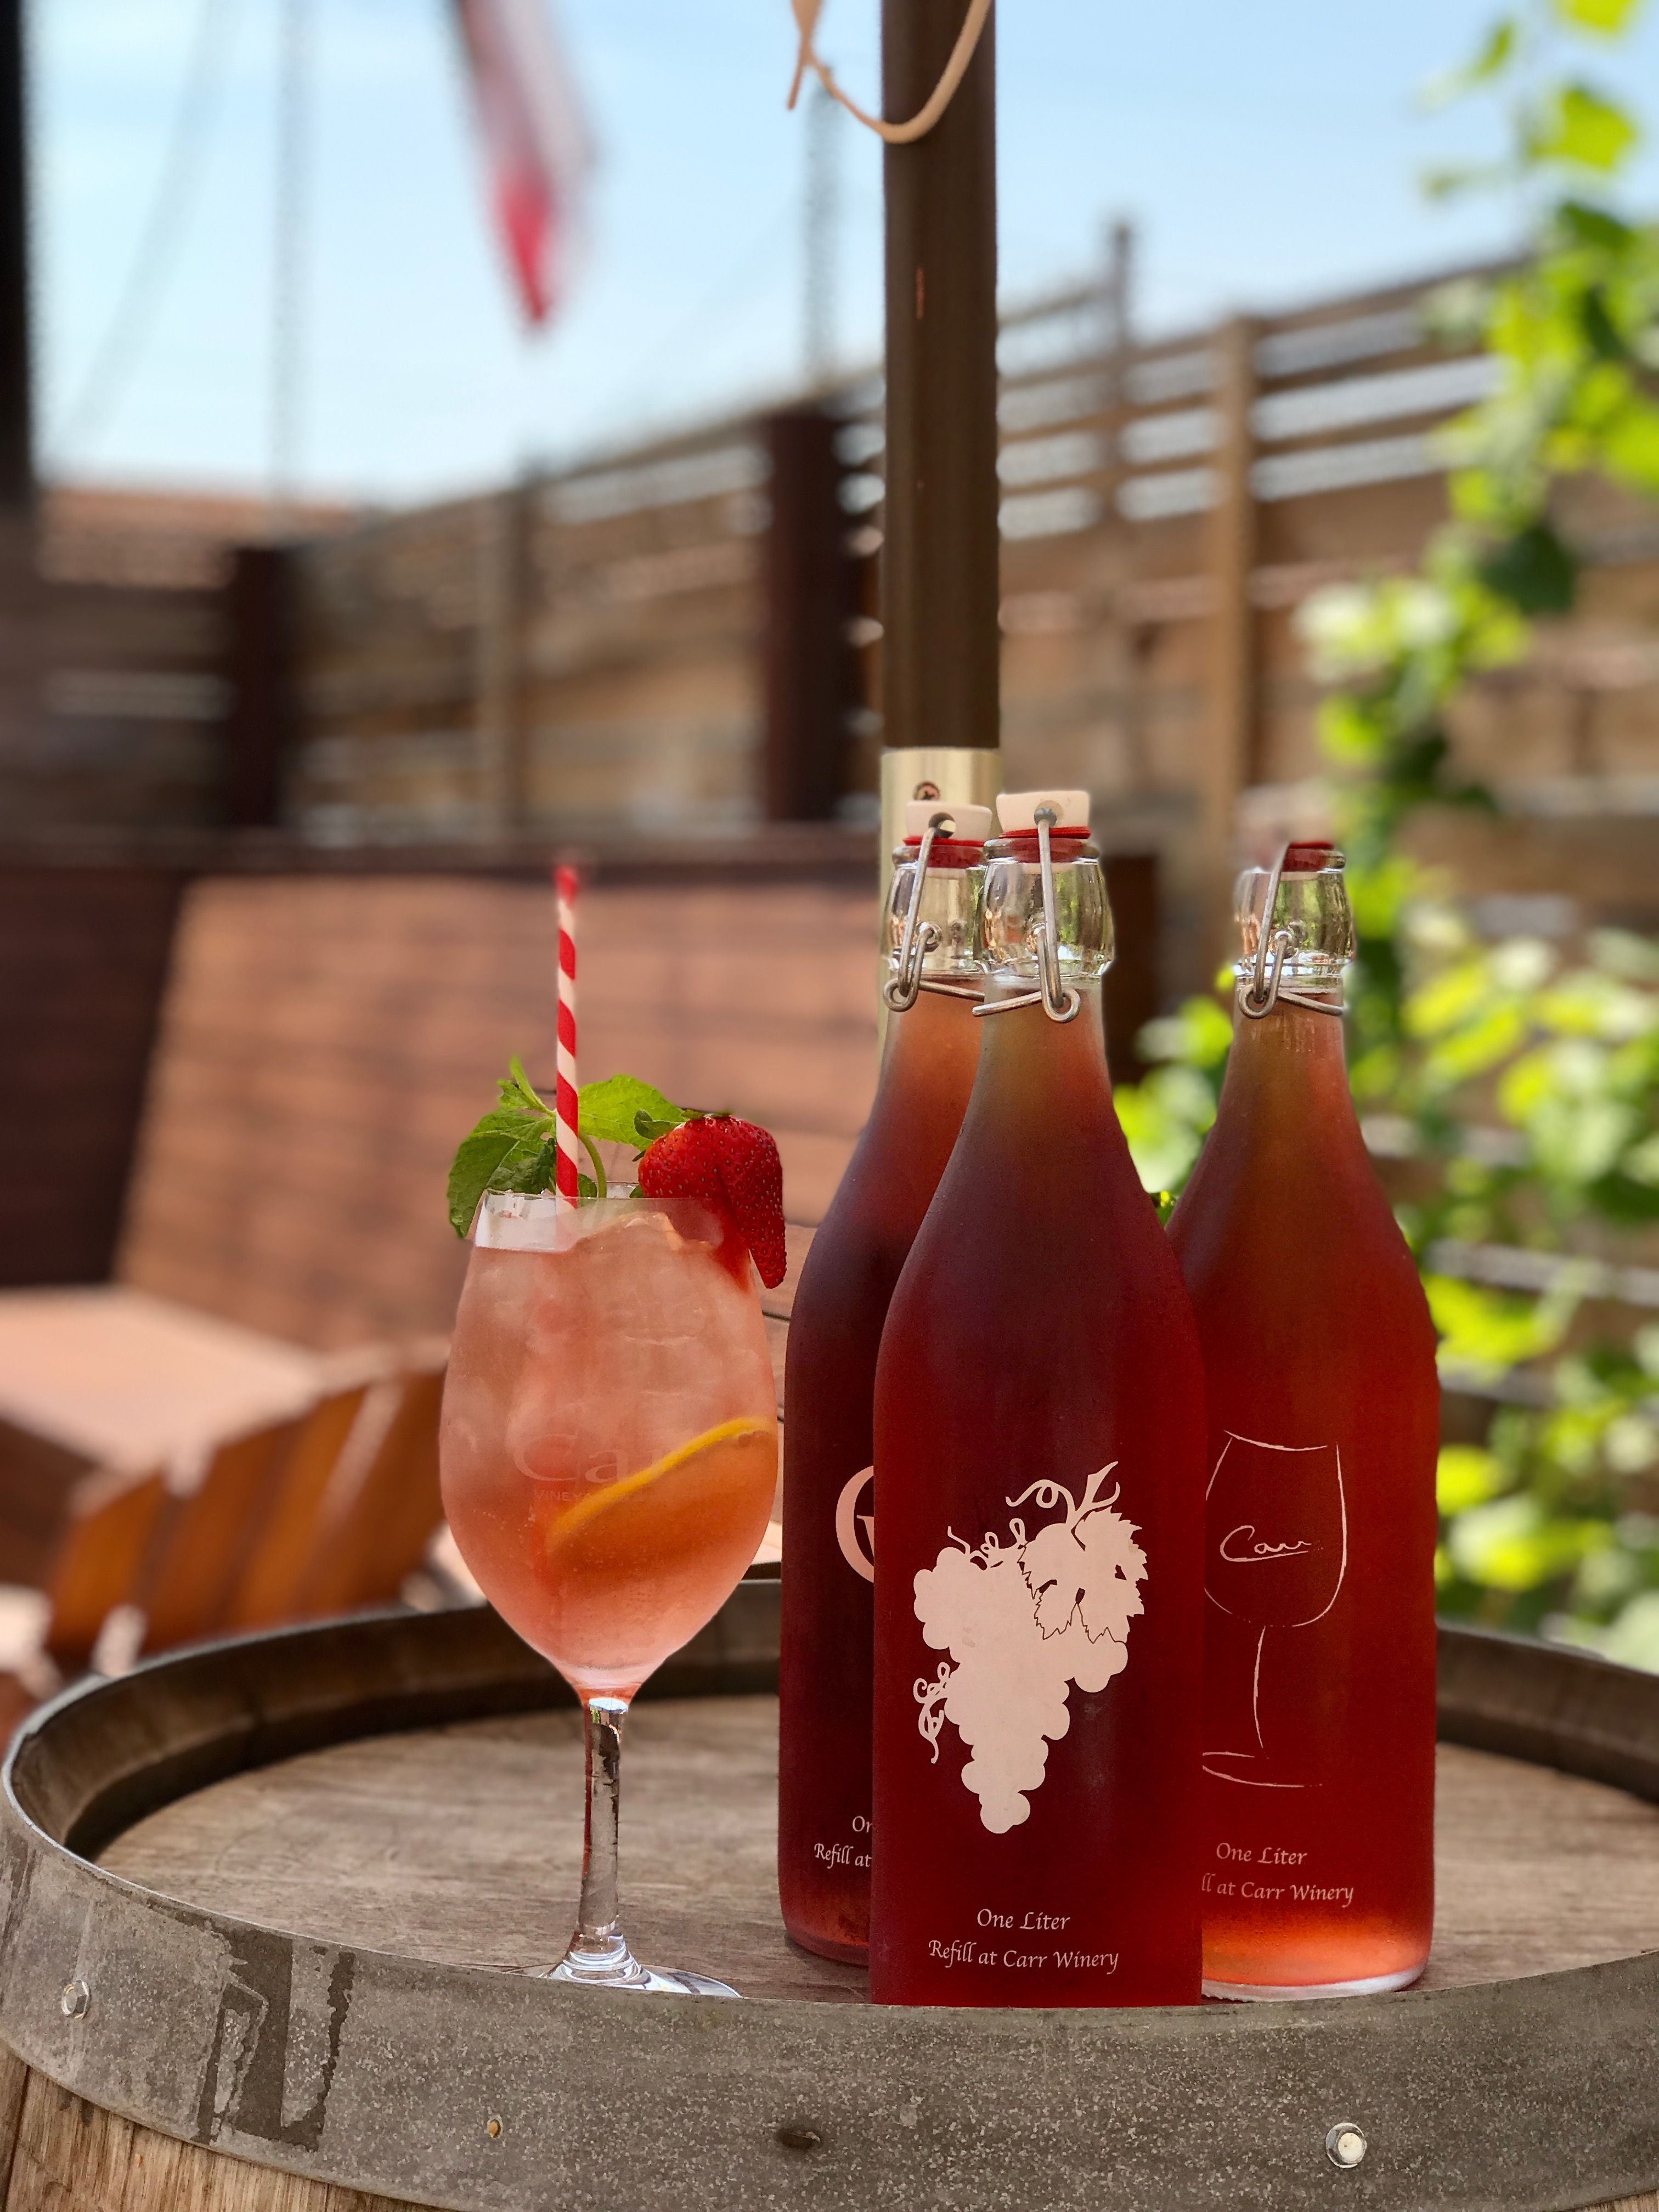 Patio Beats With Rose Spritzers Wine Bottle Barrel Room Winery